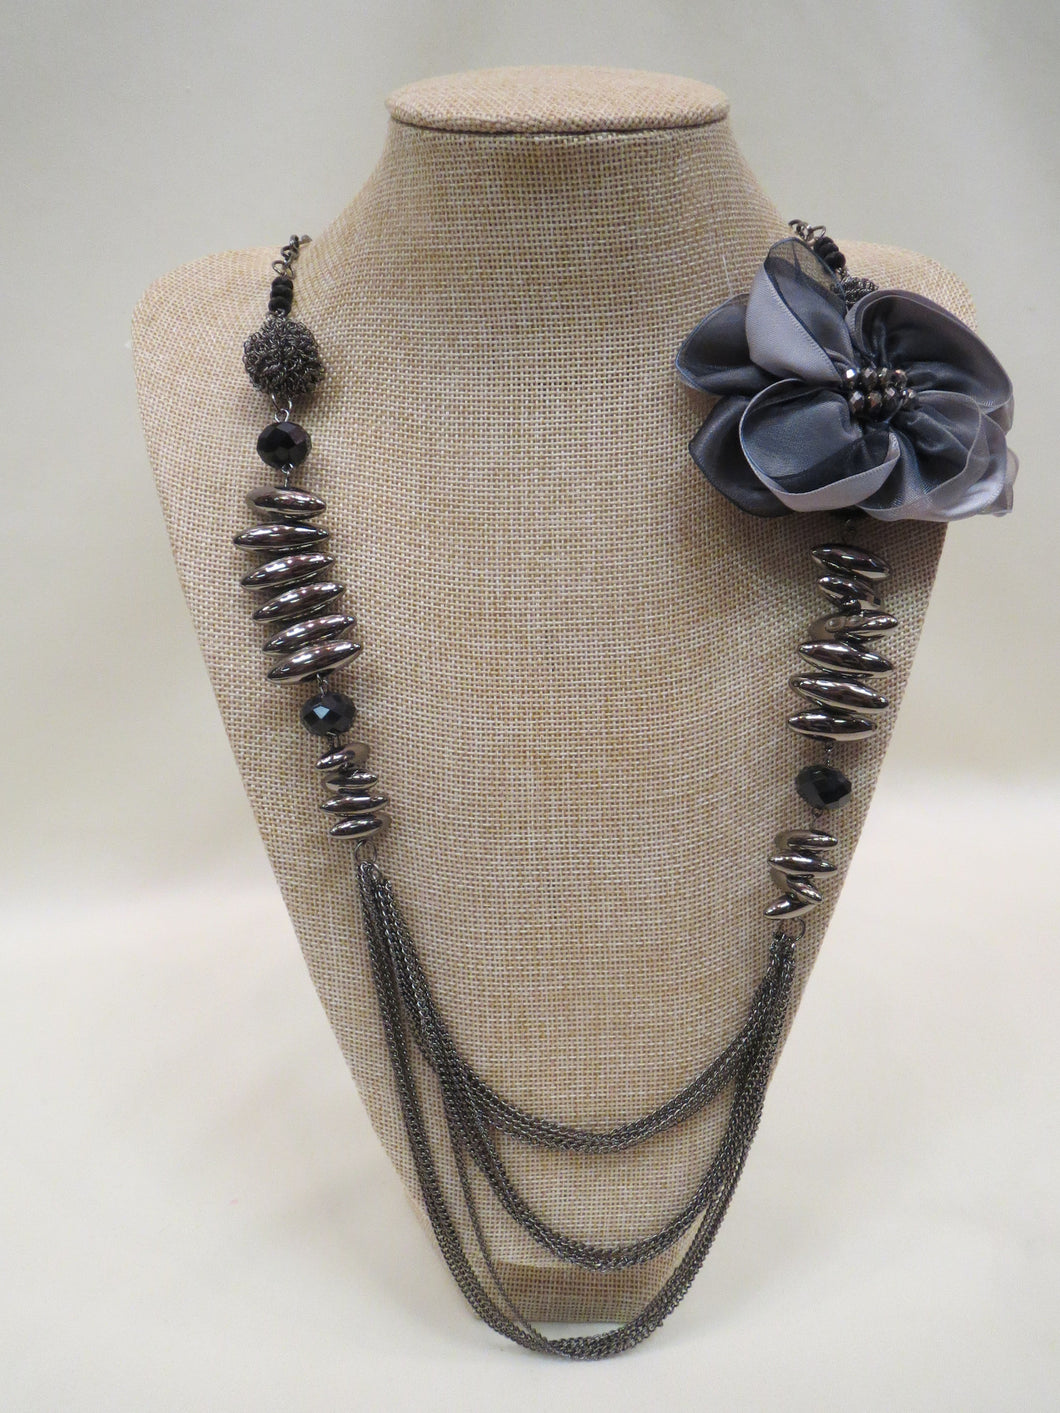 ADO | Charcoal Necklace with Bow - All Decd Out